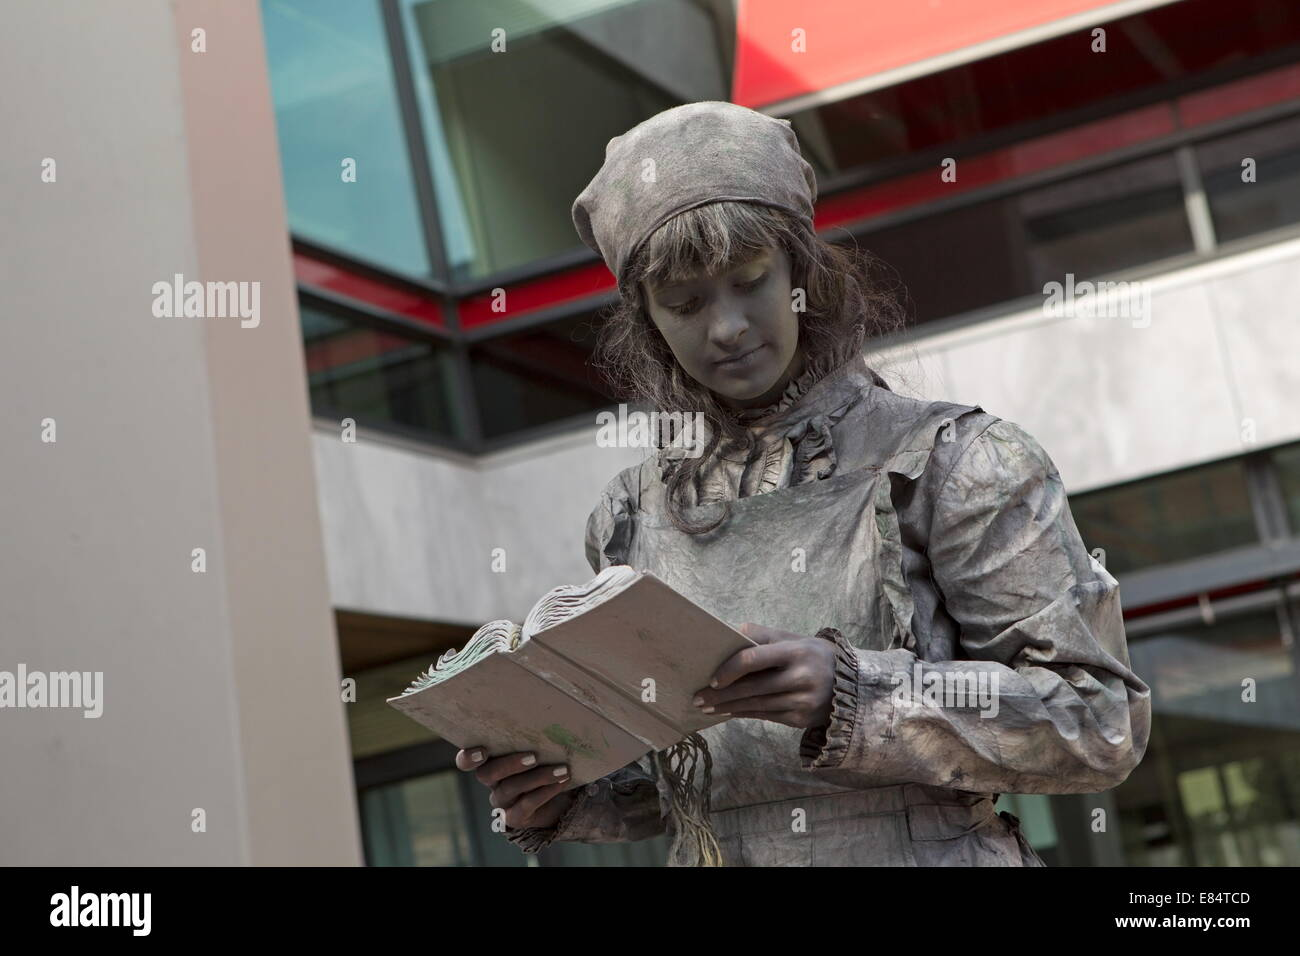 Arnhem, Netherlands - September 28, 2014: Artist imagines laundress during world championships living statues in - Stock Image